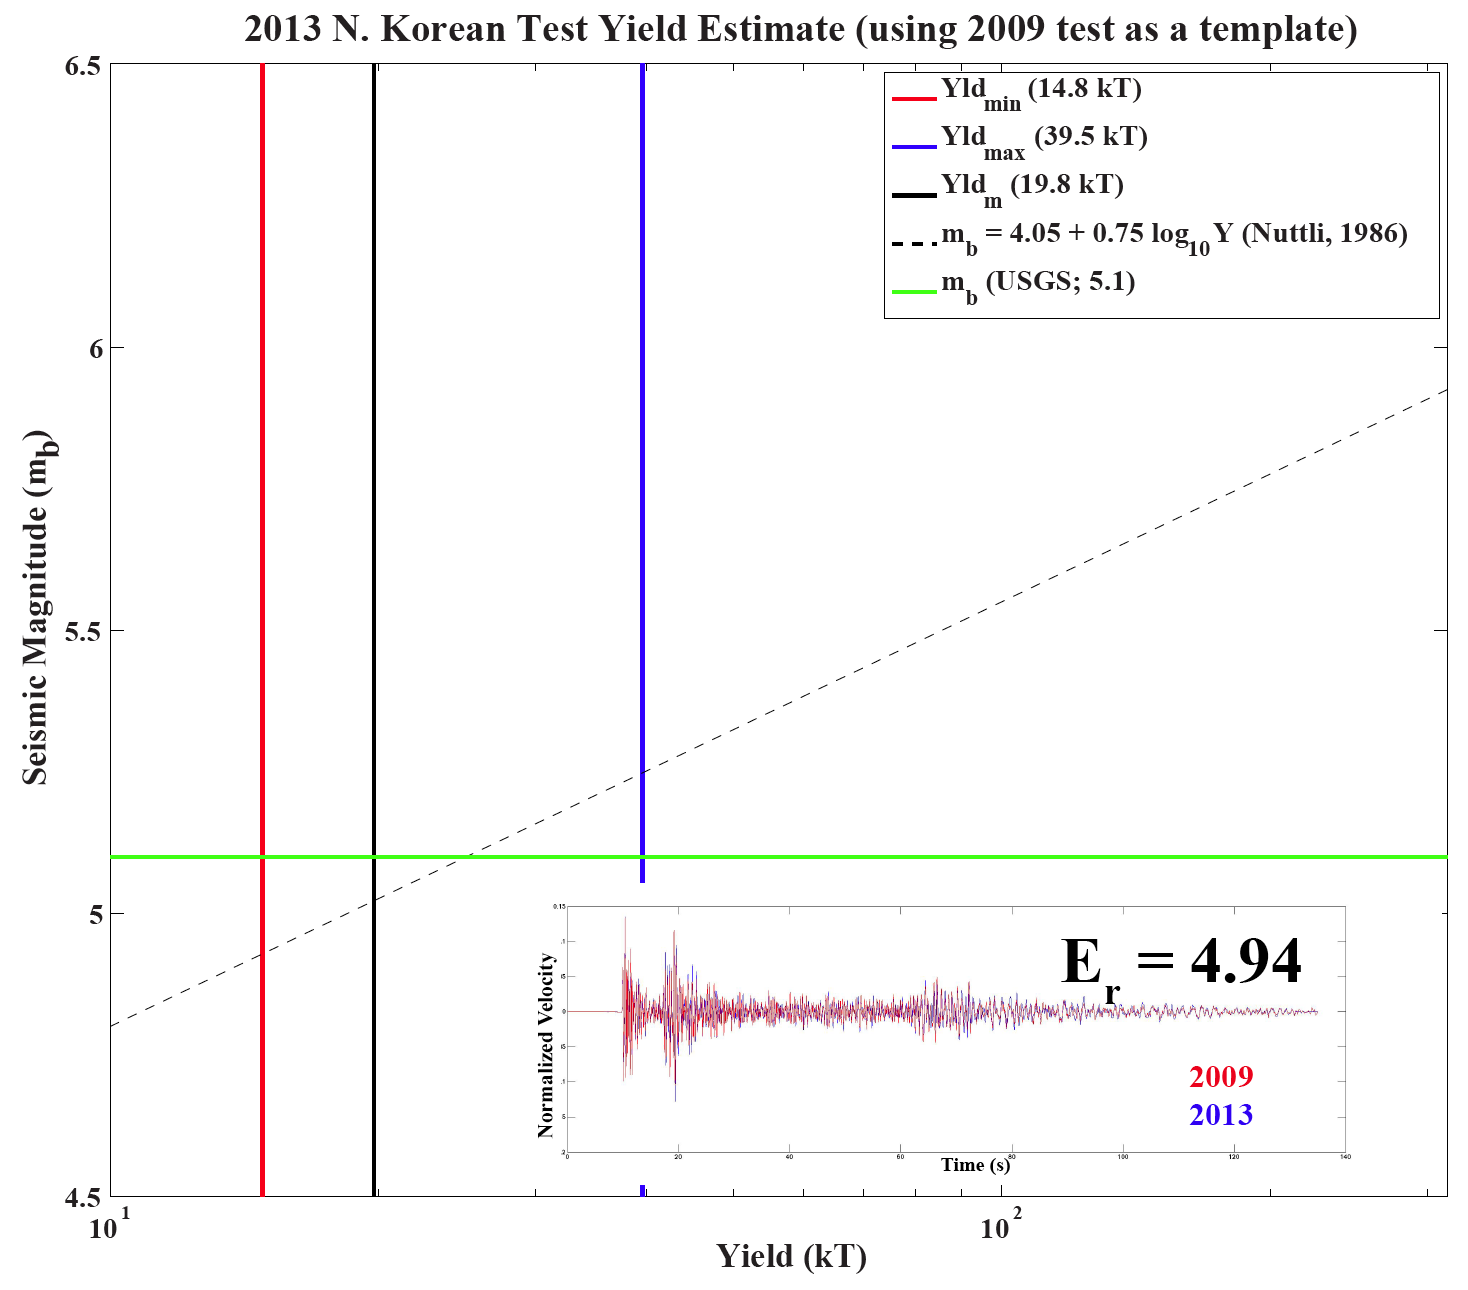 2013 N. Korean test yield estimate, using 2009 test as a template